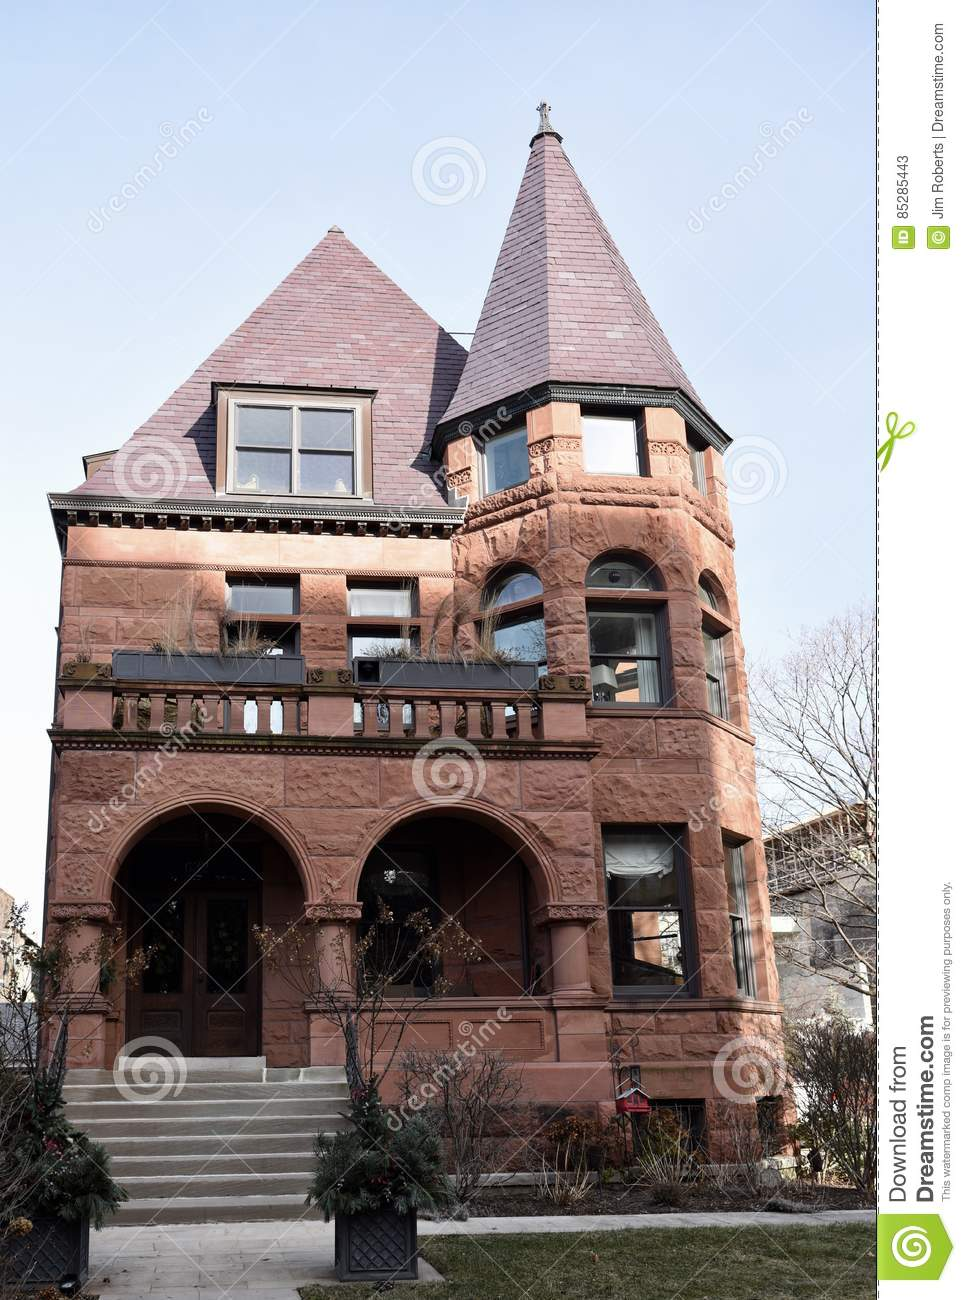 Romanesque Revival Mansion Editorial Stock Photo.